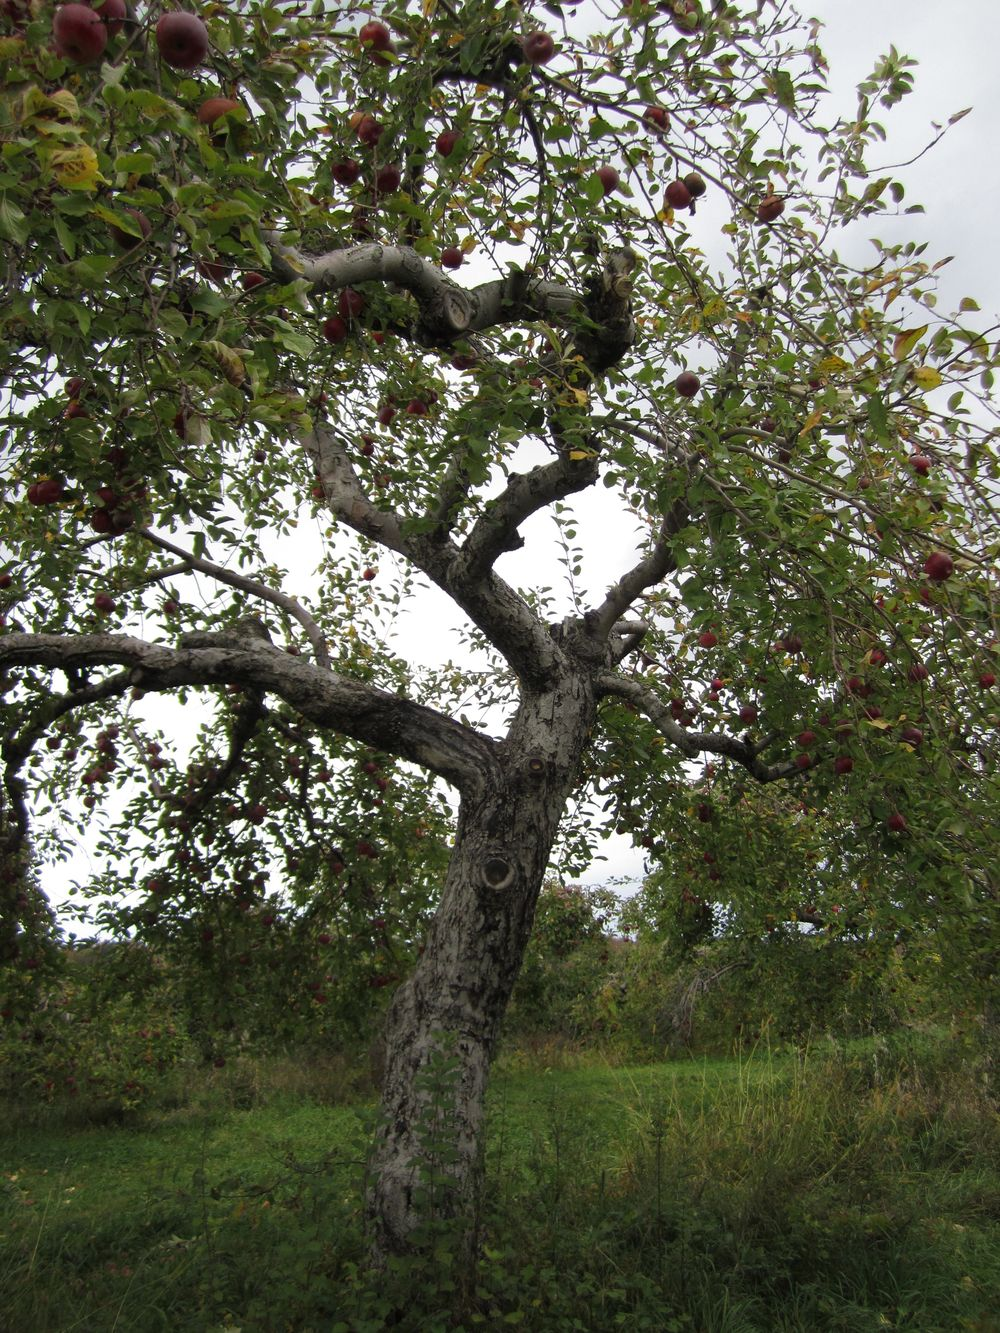 Apple picking in Indian ladder farms - Altamont, NY.